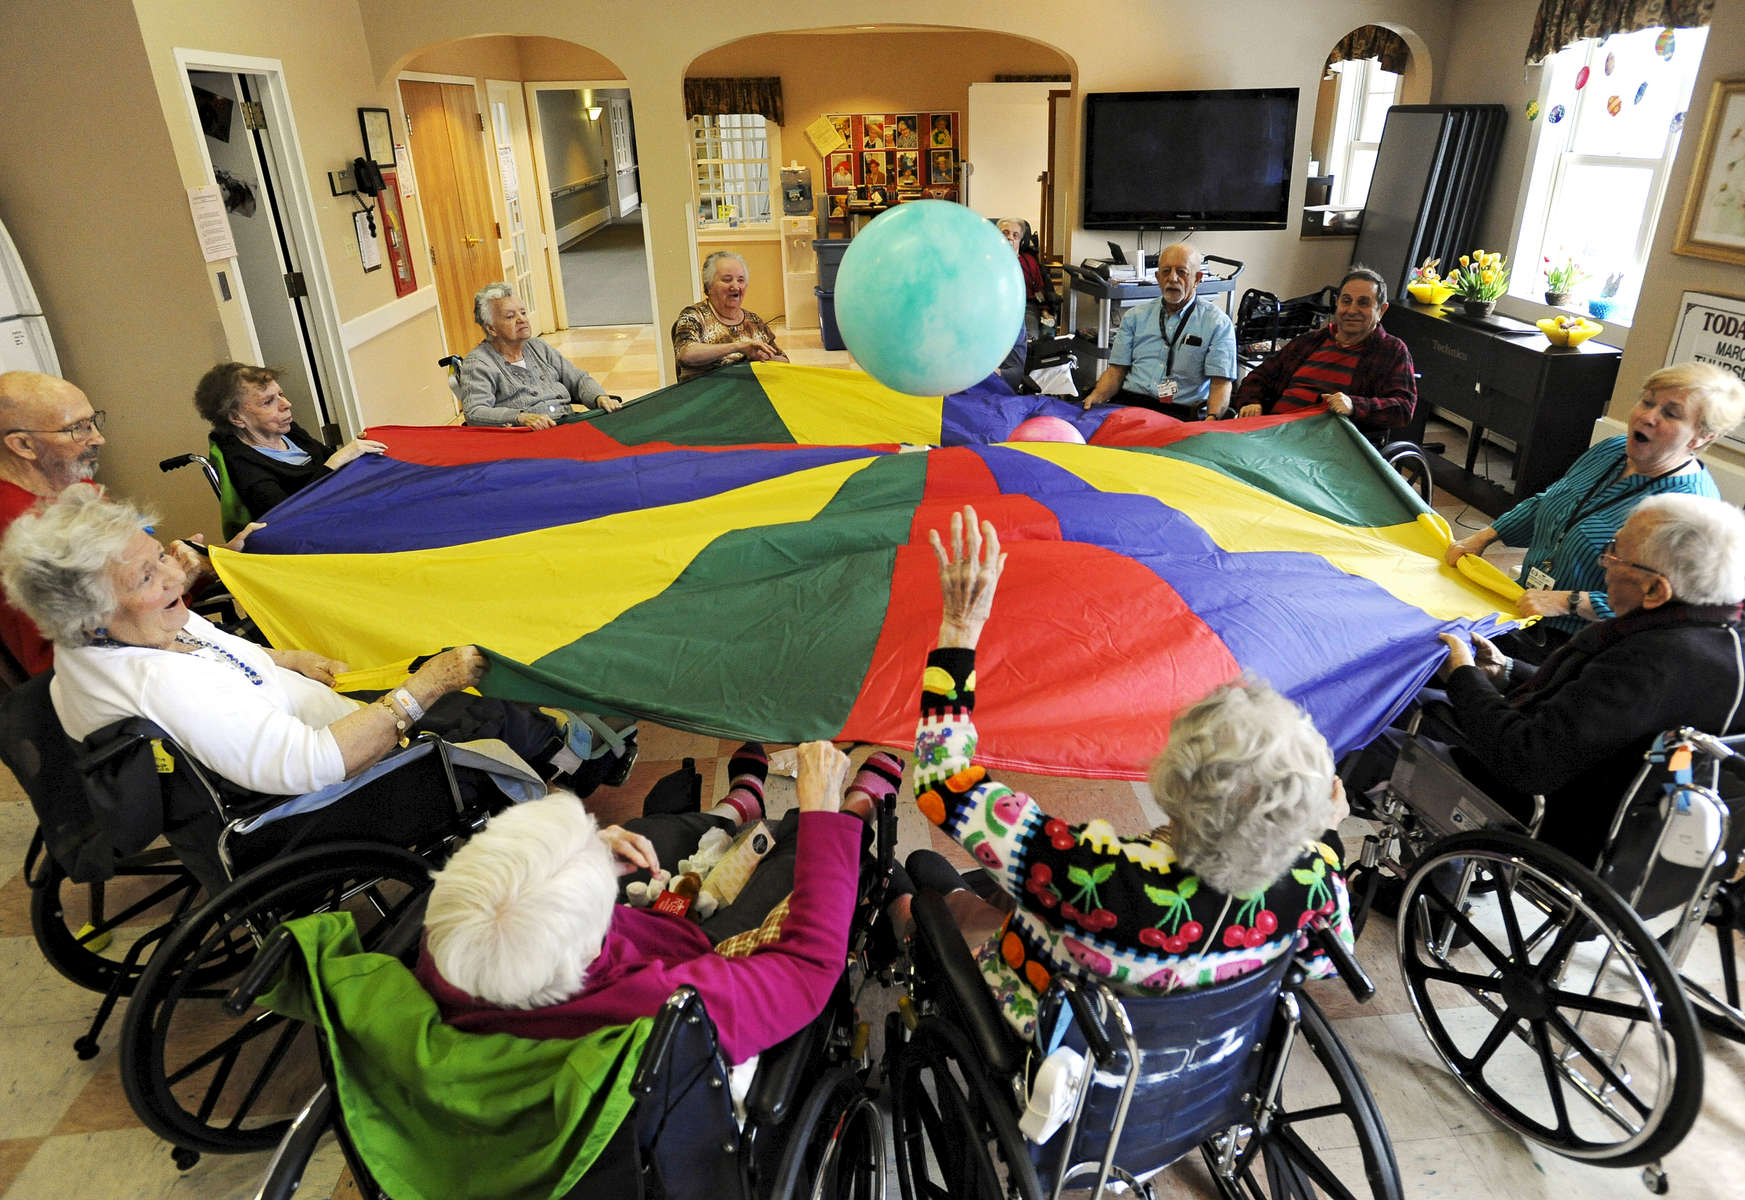 Dee Lawrence and Margaret O'Hara swat at the ball during therapeutic exercise session with the parachute at the JML Care Center. Federal cuts to Medicare reimbursement rates will impact nursing home facilities on the Cape.